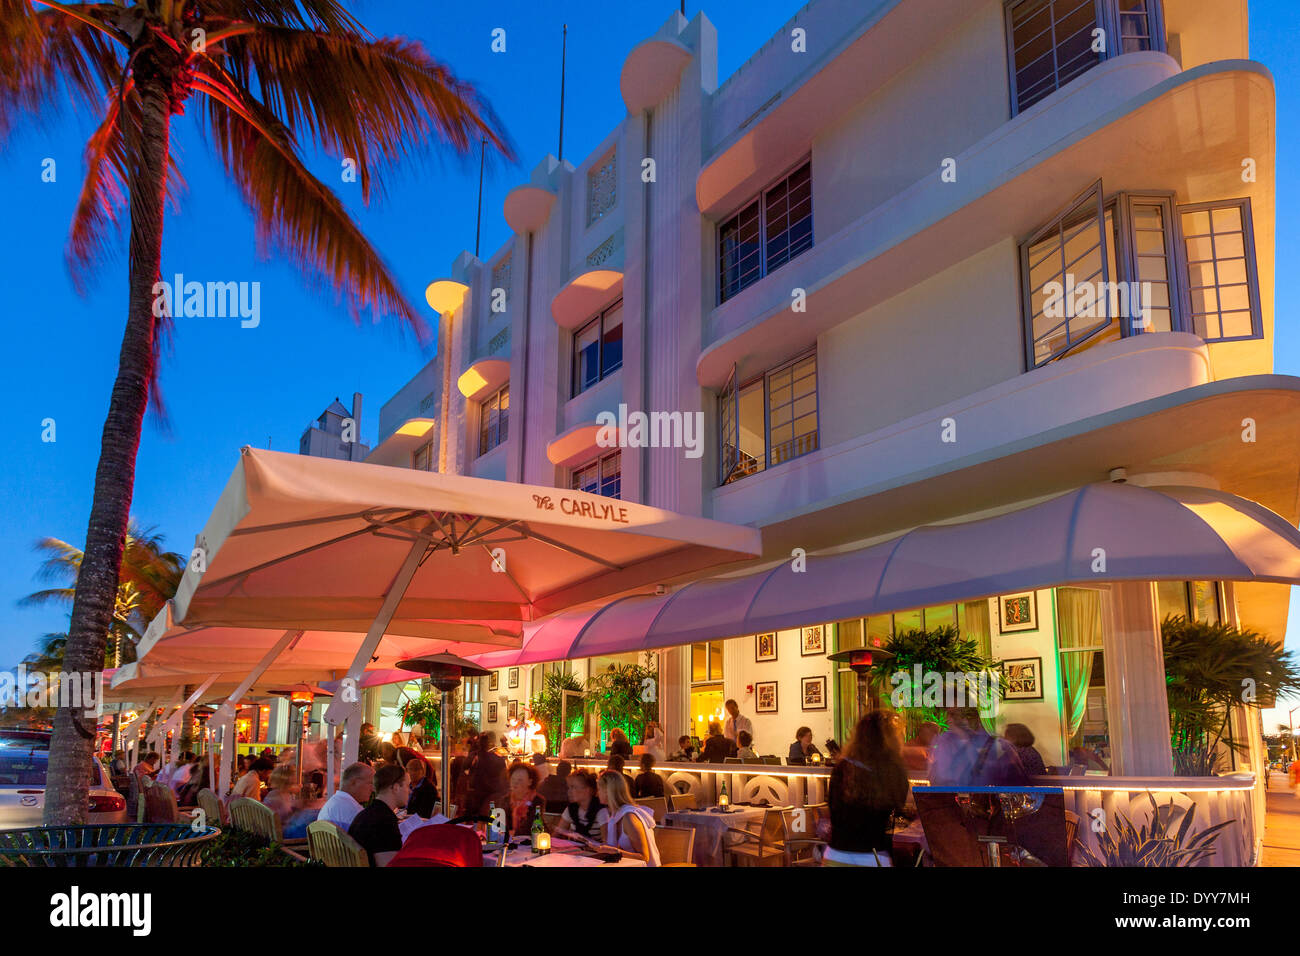 Carlyle South Beach Restaurant